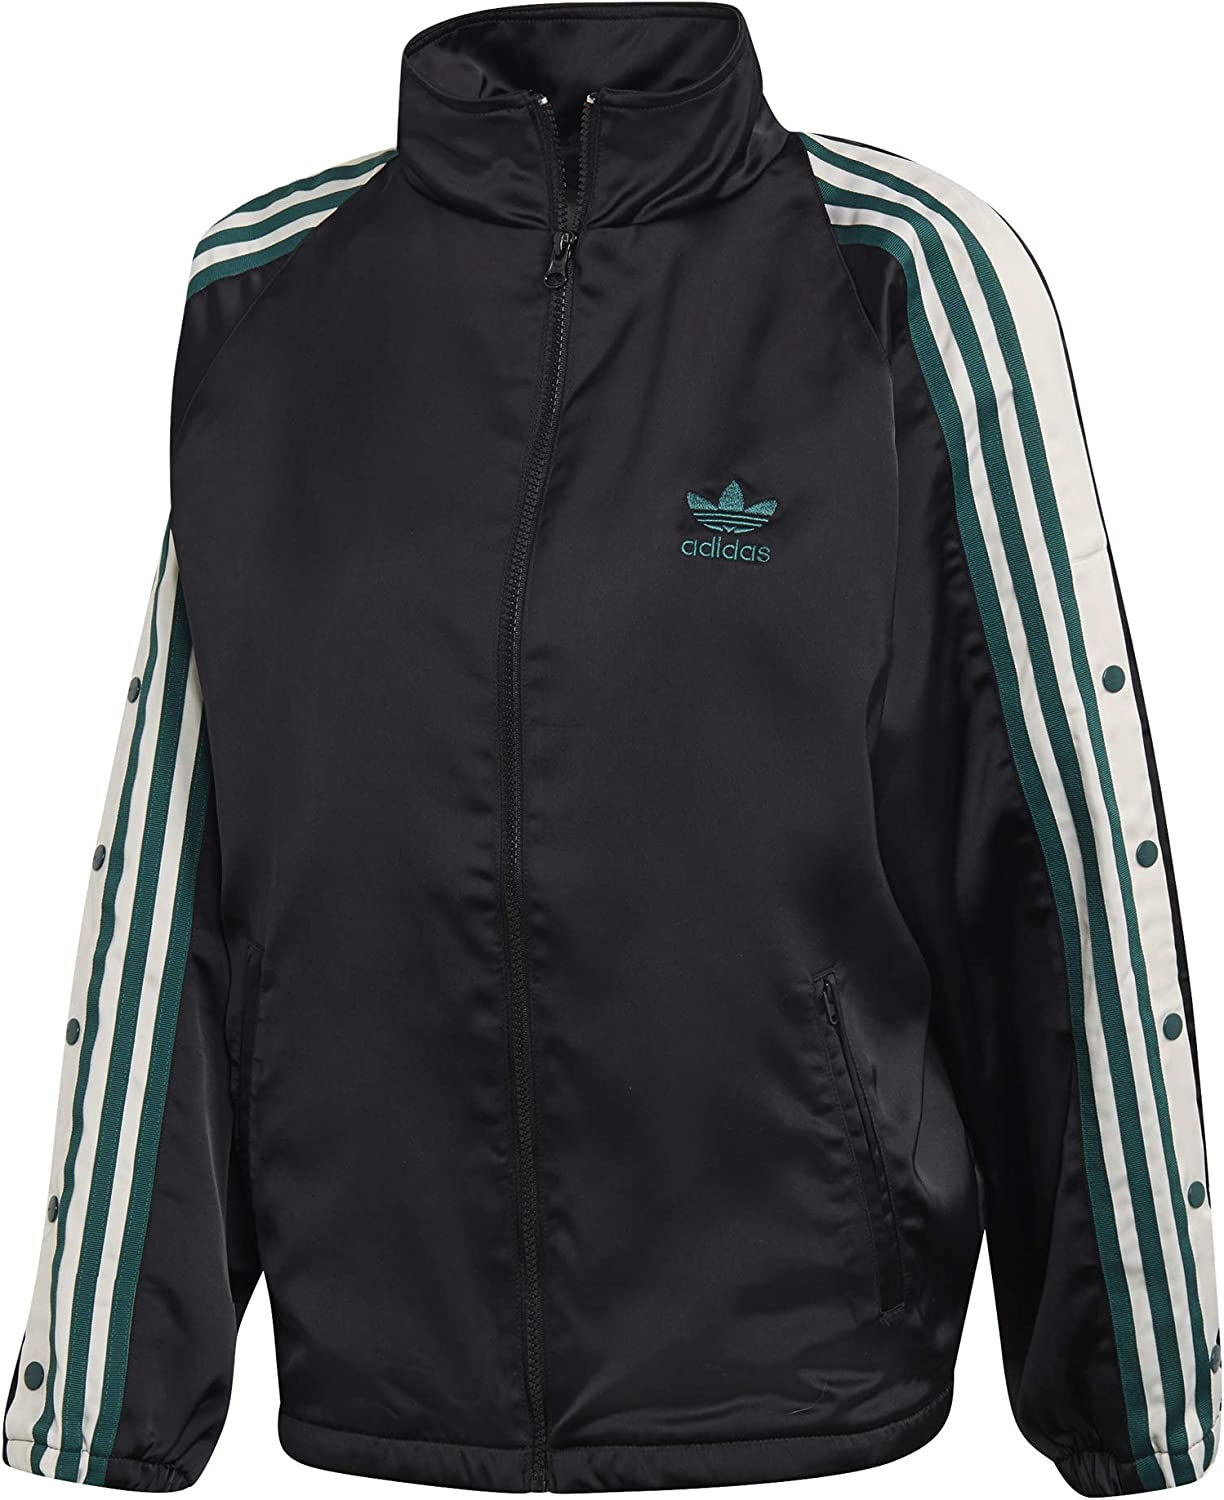 Adidas Originals Classic Track Jacket